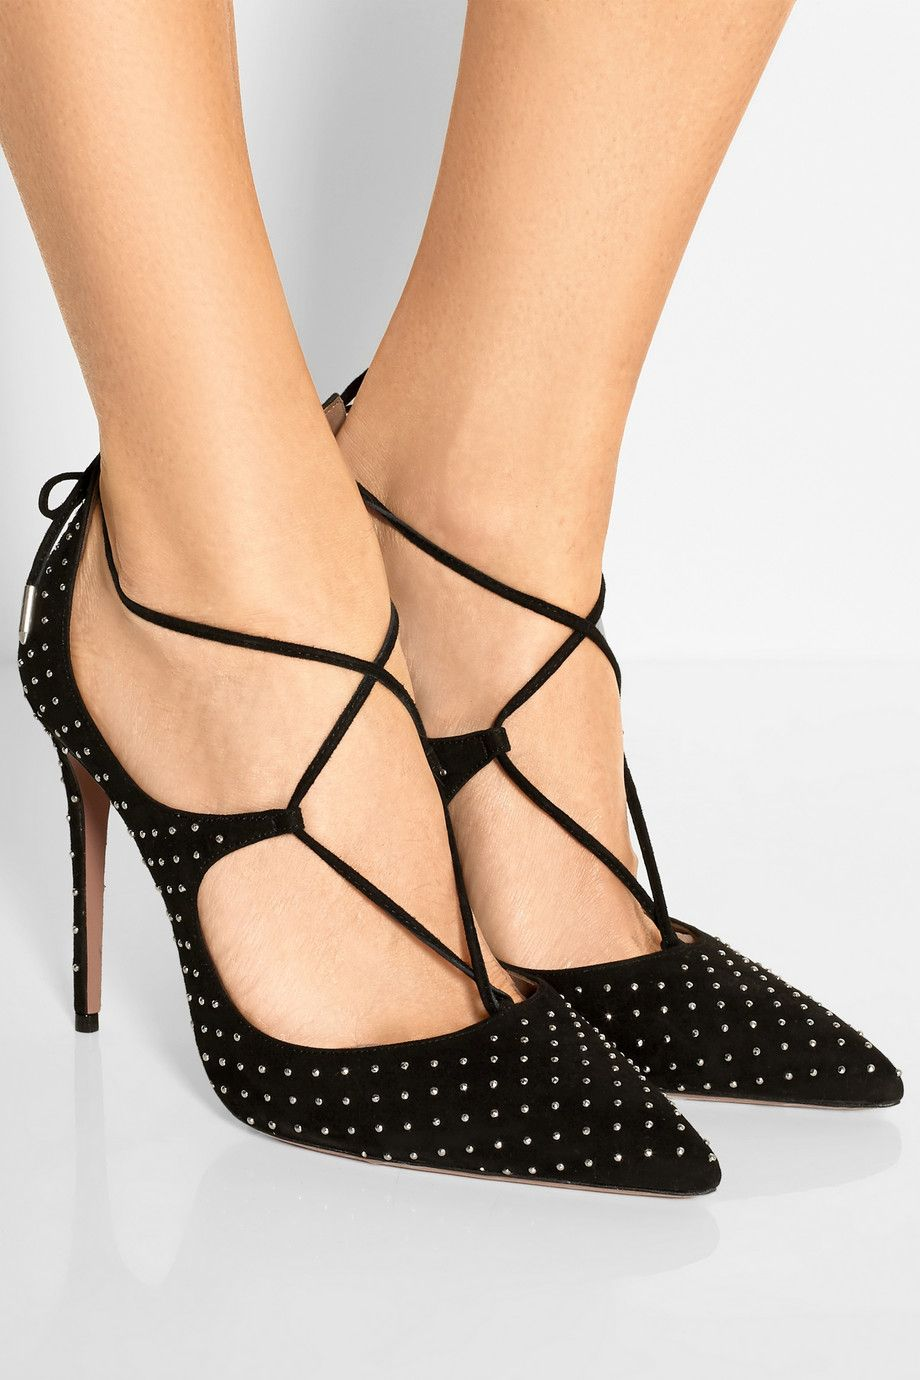 Christy pumps - Black Aquazzura 9b7xGBw